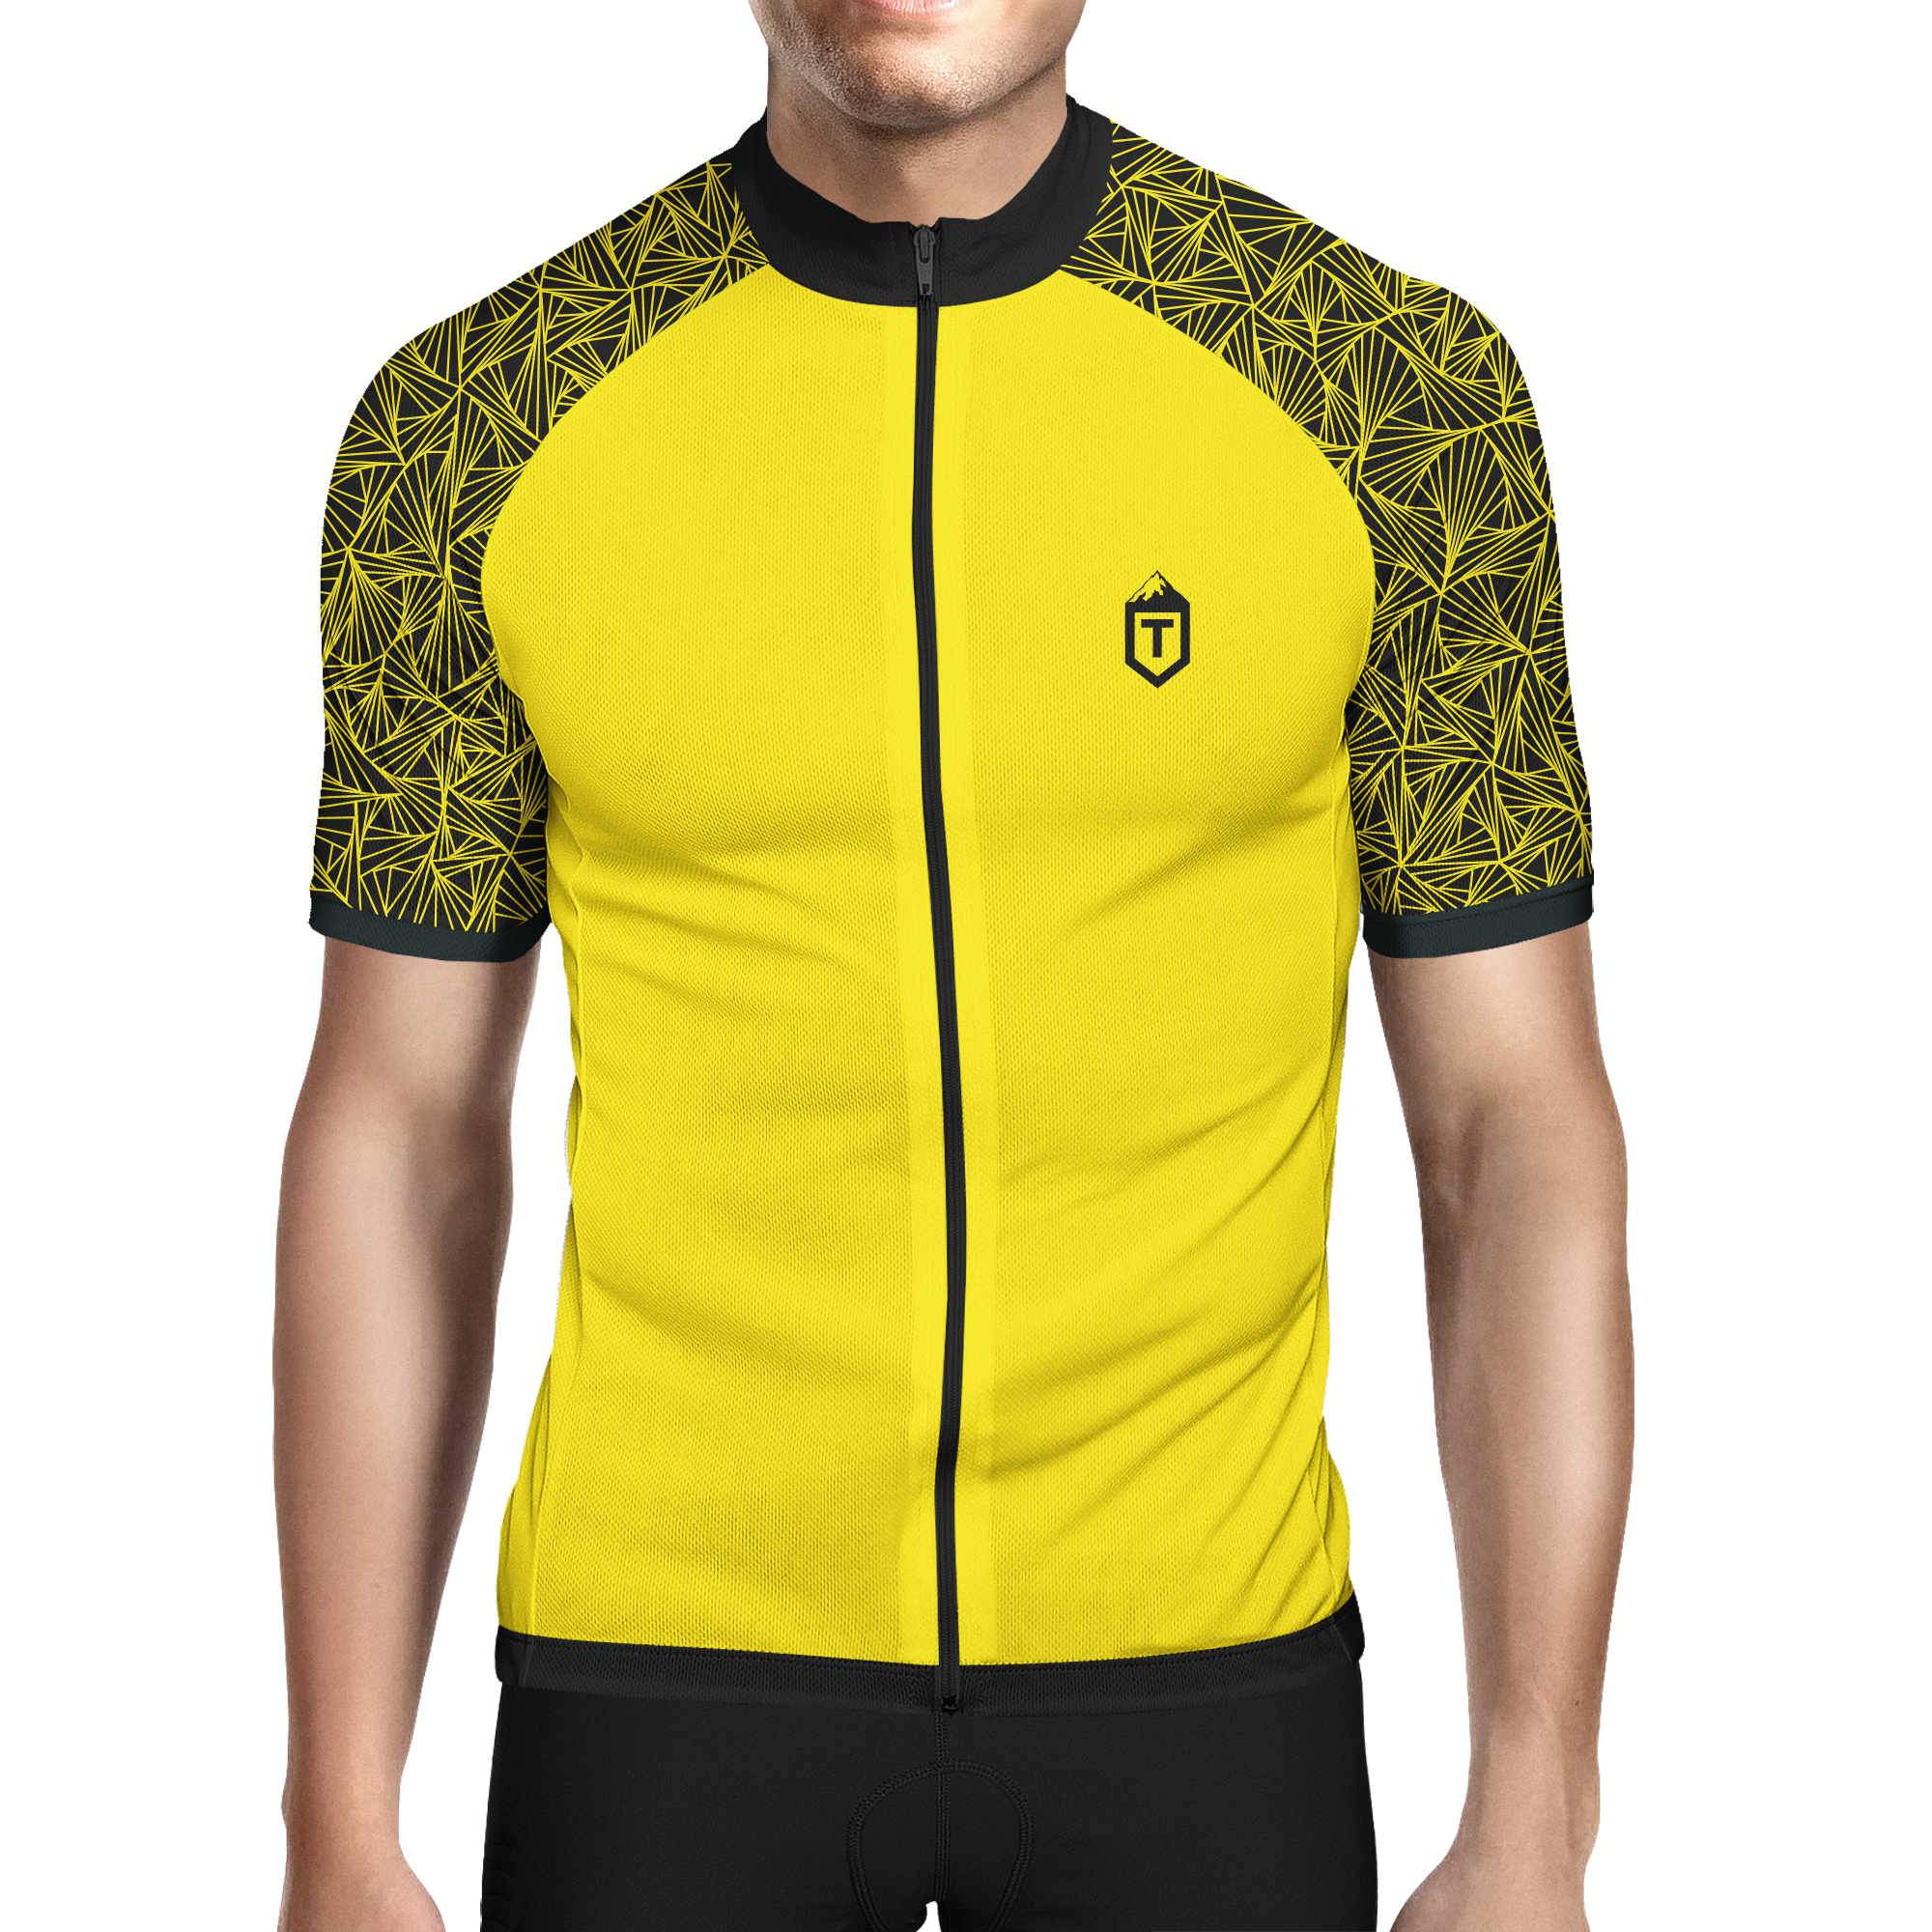 Triangles Jersey - Yellow / Black / Yellow - The Tempests Store